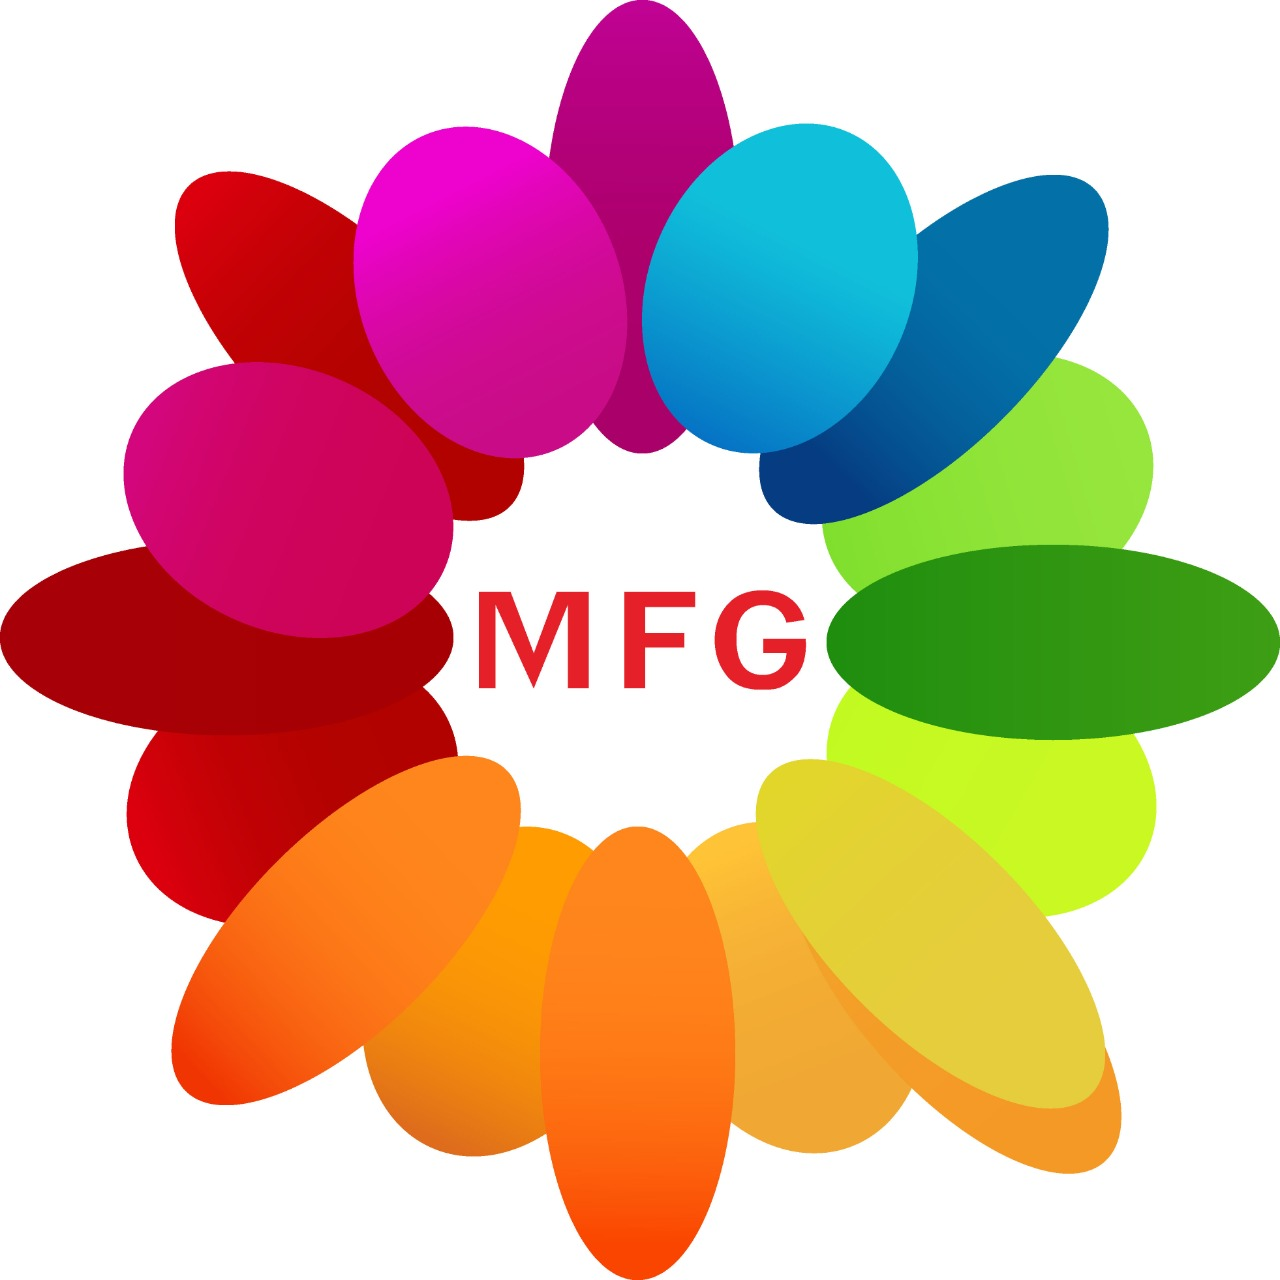 bunch of white lilies with red carnation with 6 inch white teddy bear